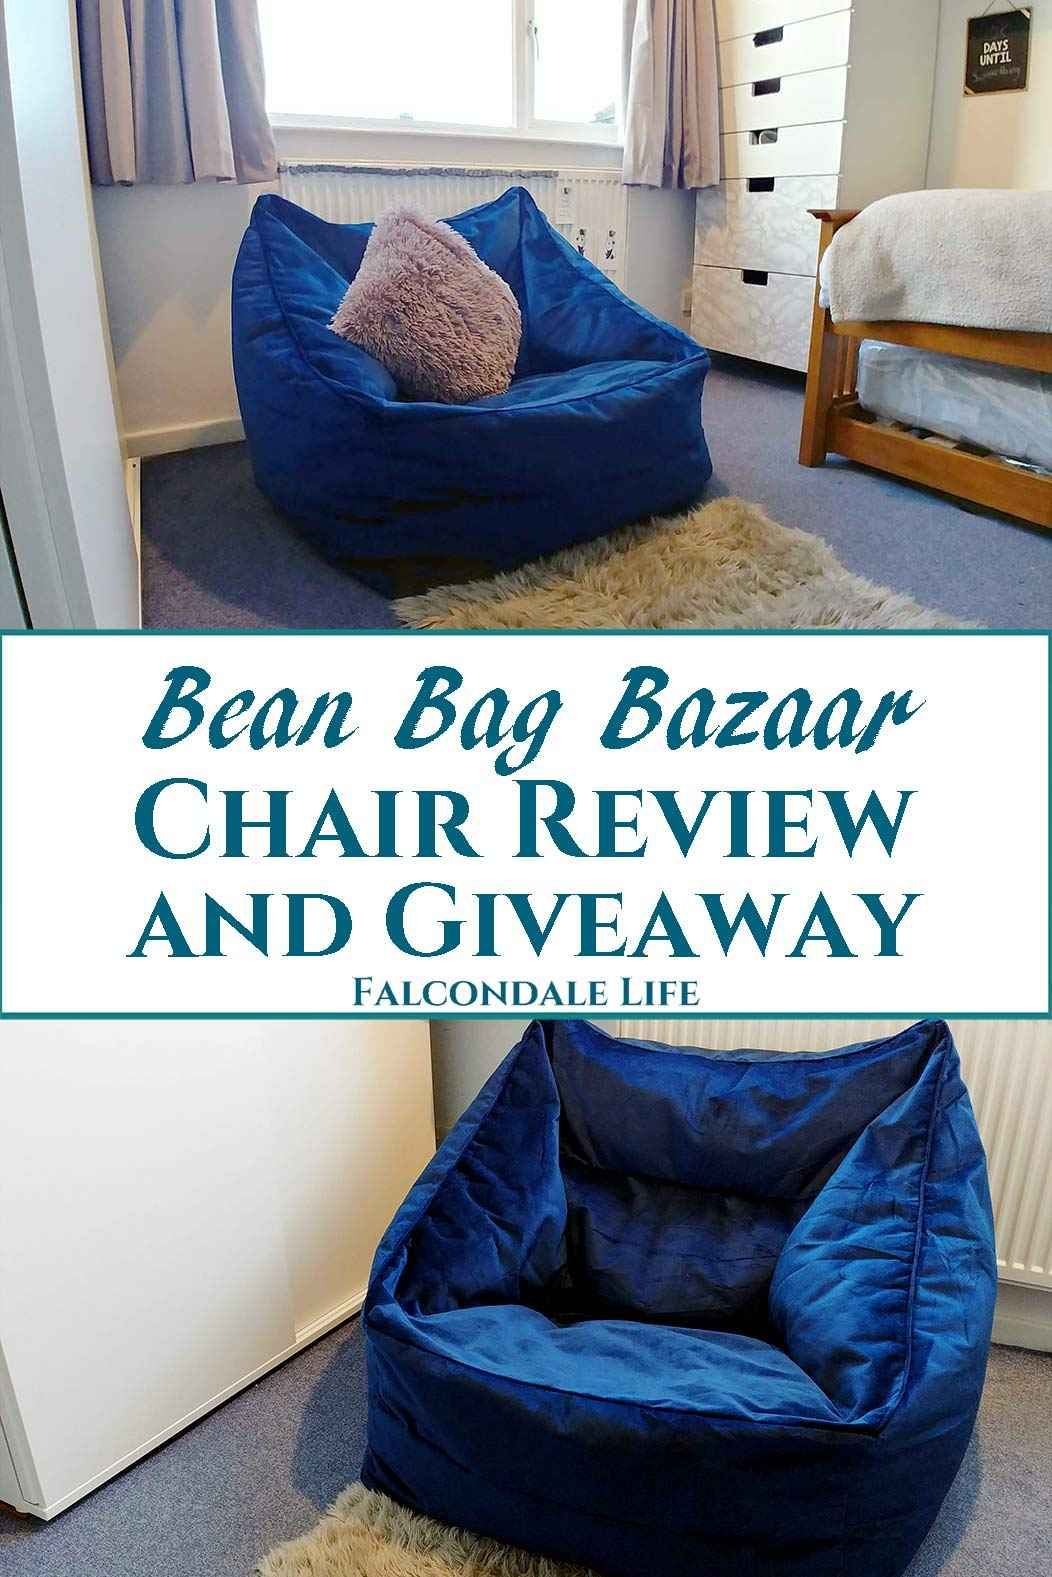 Bean Bag Bazaar Chair Review and Giveaway Bean bag